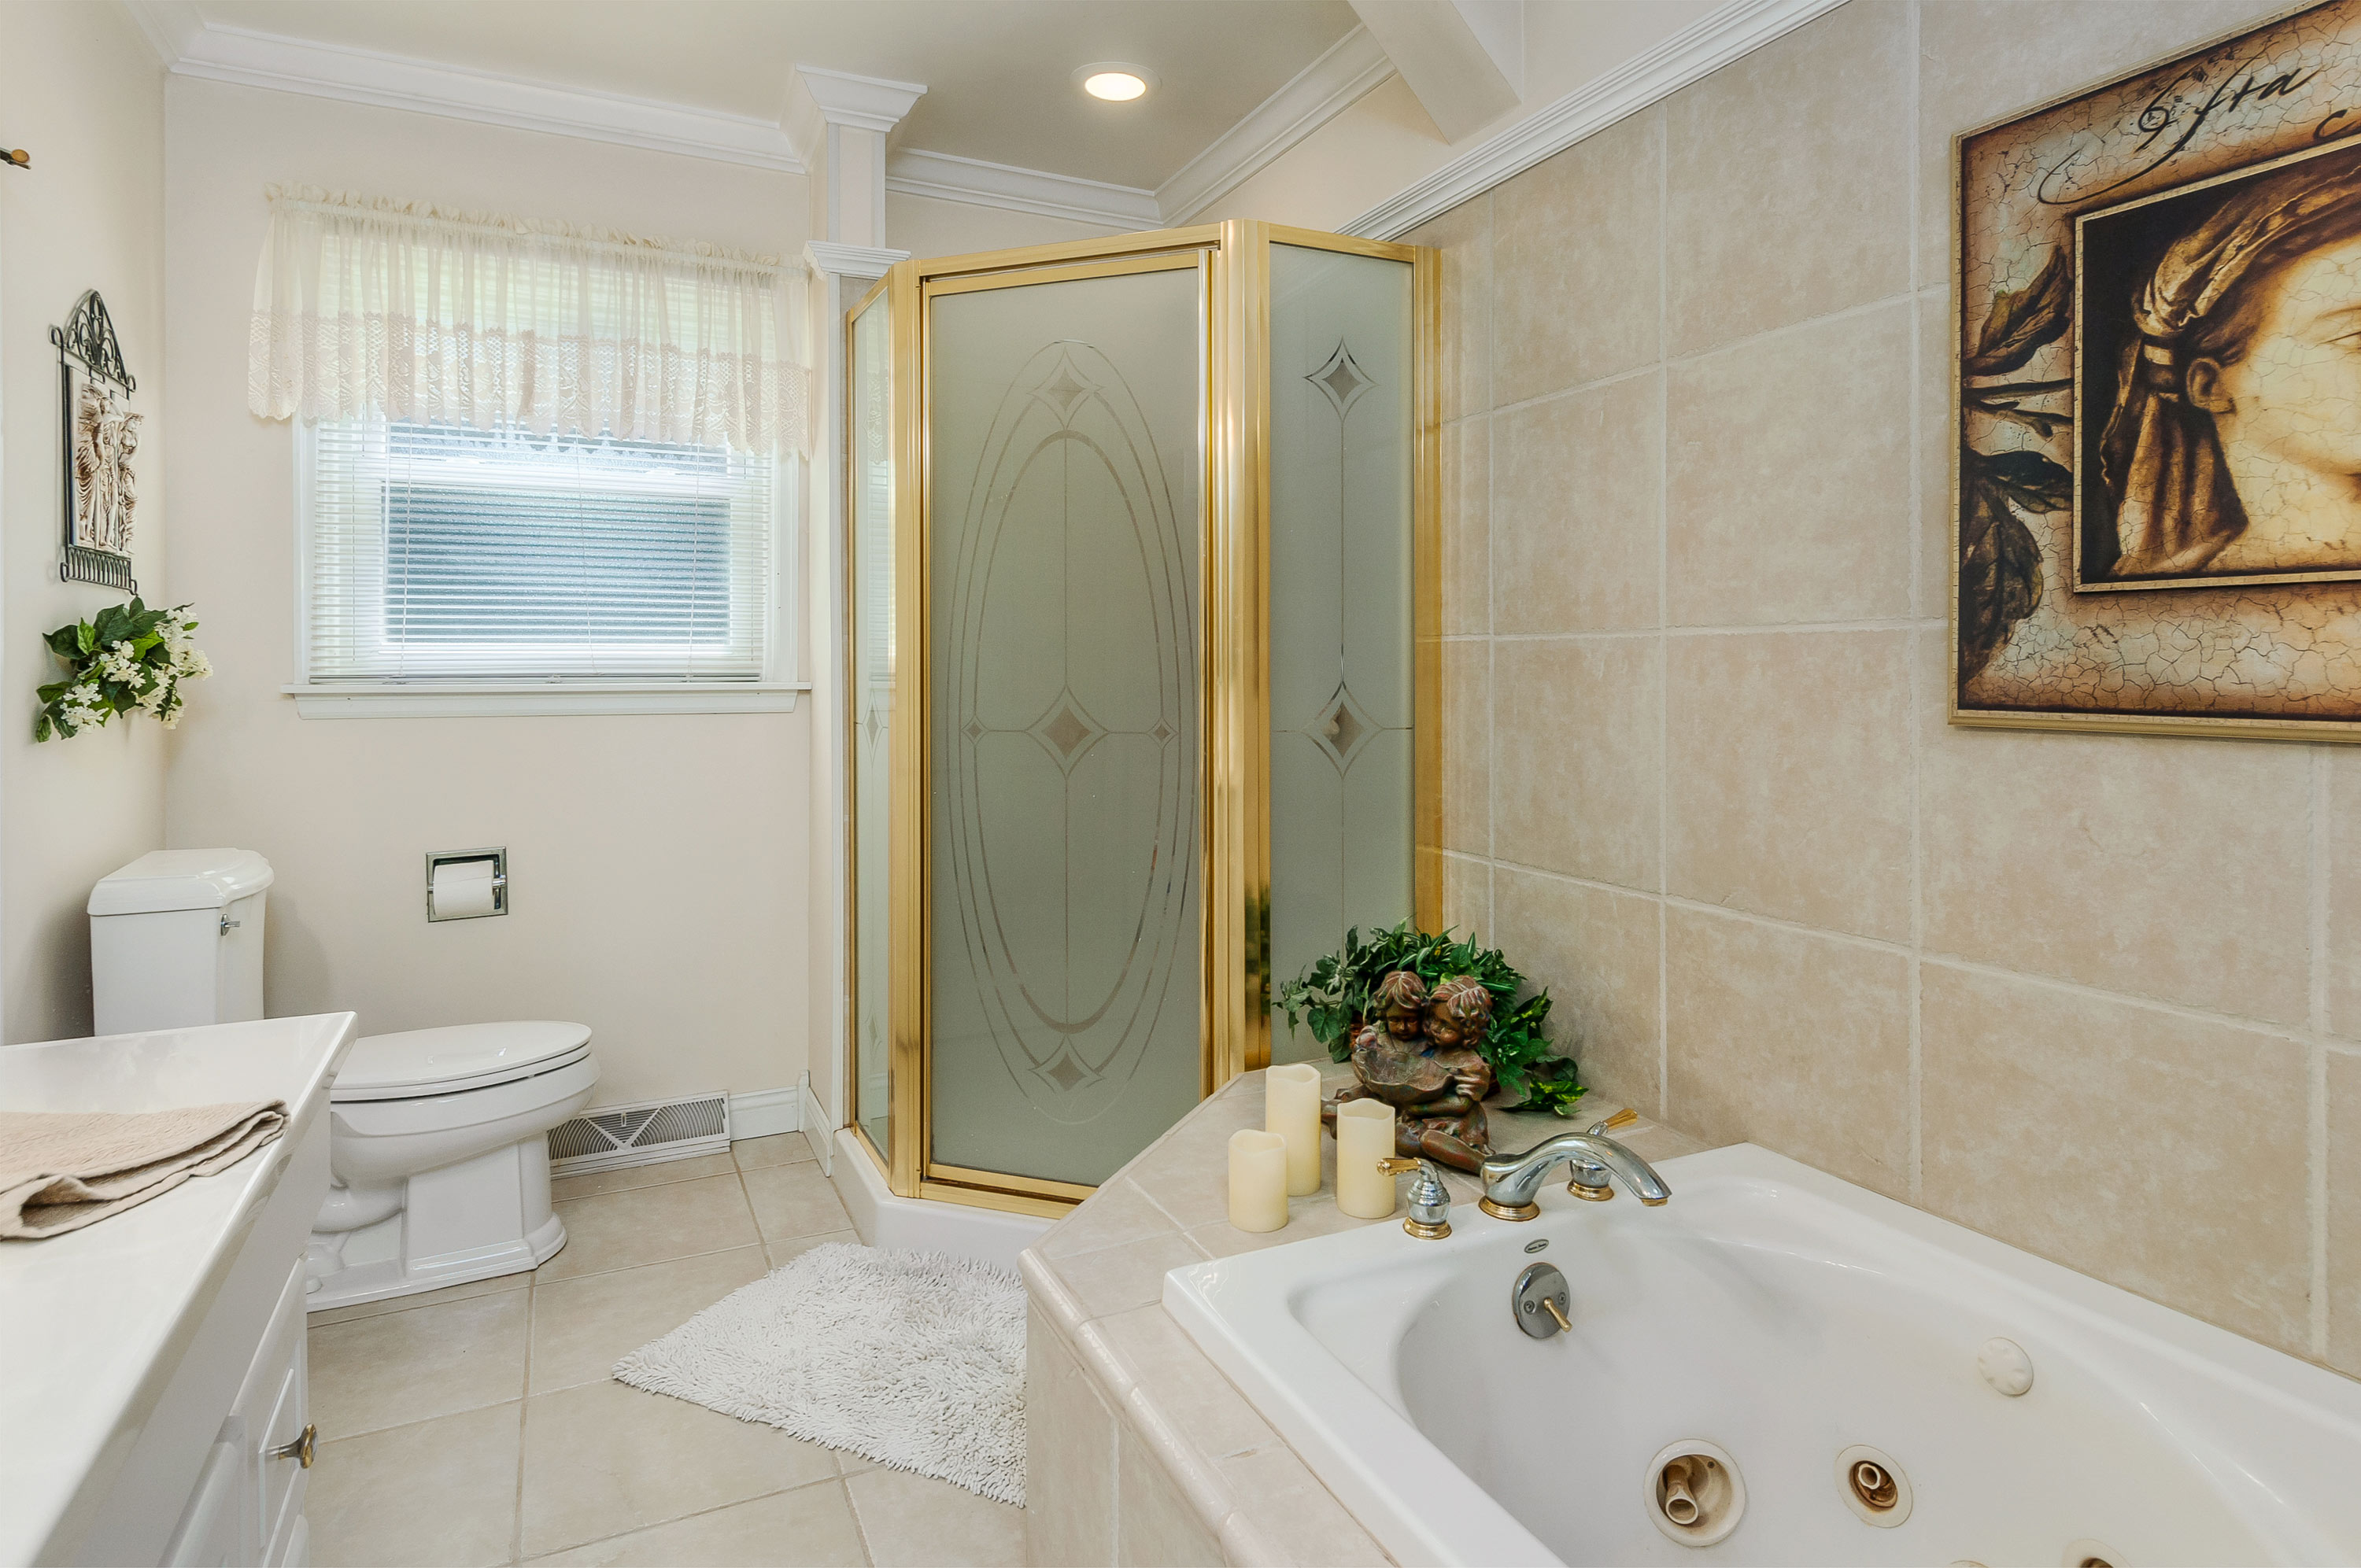 Master bathroom at 369 Holiday Dr., Somonauk, IL